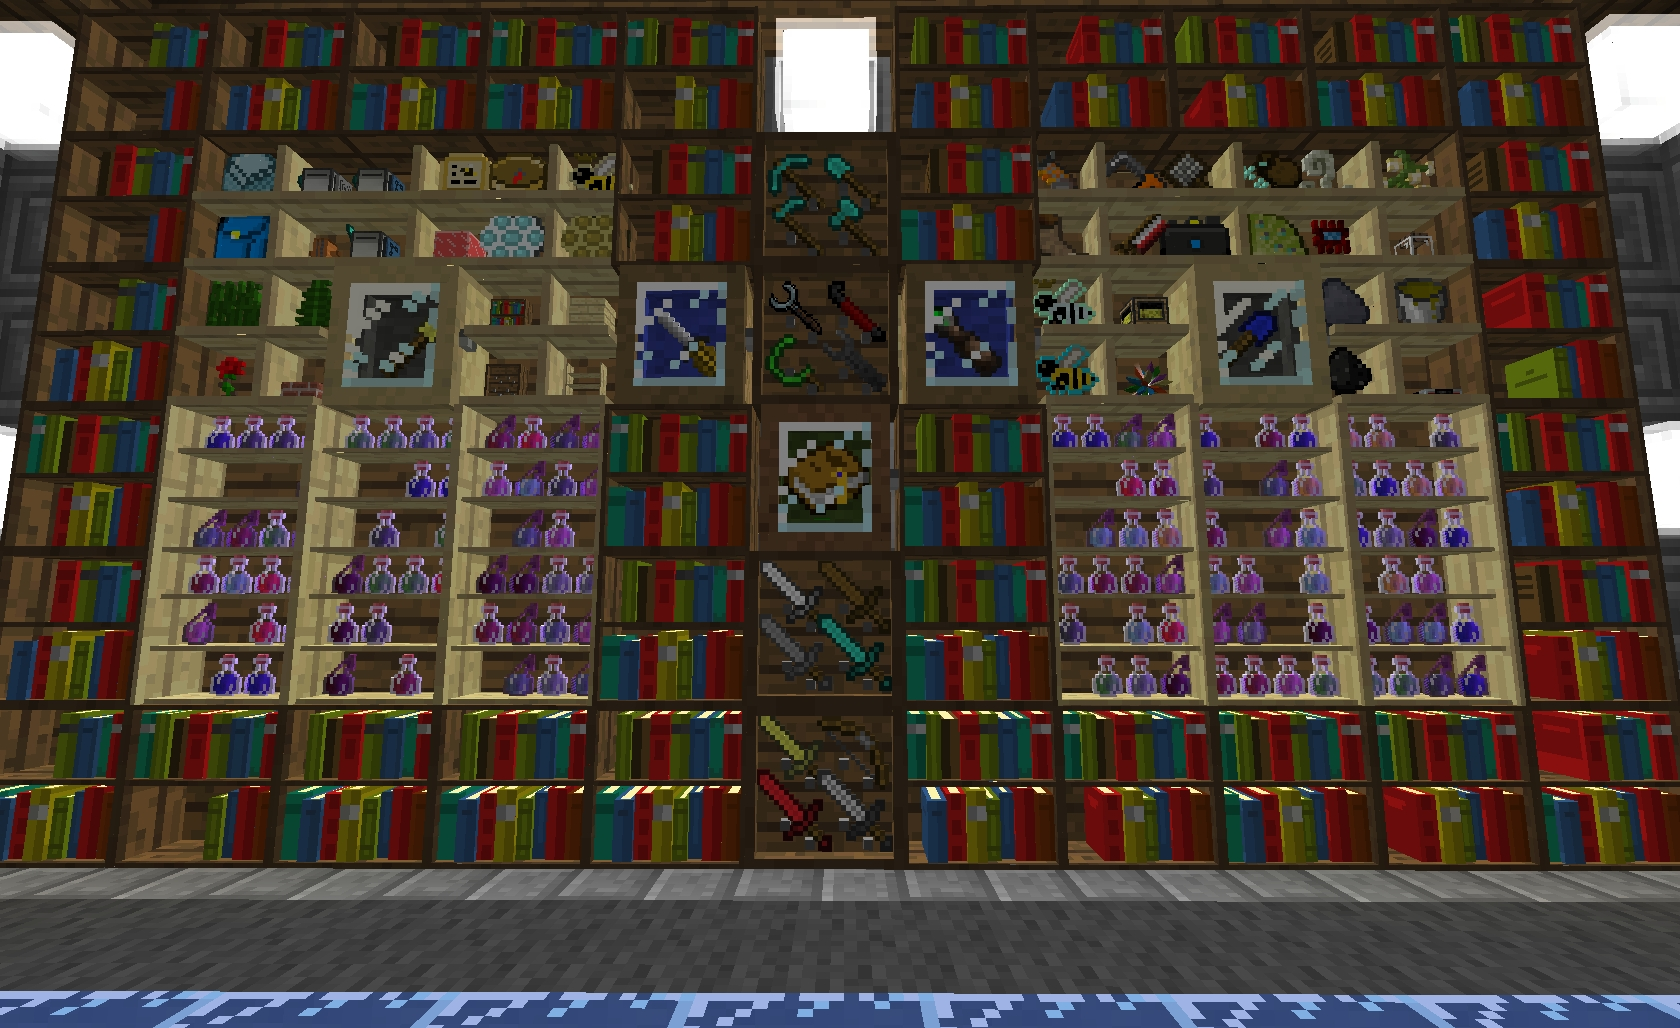 [%Bibliocraft [V2.4.3] Bookcases, Armor Stands, Shelves, Printing Within Most Current Minecraft Bookcases|Minecraft Bookcases Throughout Current Bibliocraft [V2.4.3] Bookcases, Armor Stands, Shelves, Printing|Recent Minecraft Bookcases Inside Bibliocraft [V2.4.3] Bookcases, Armor Stands, Shelves, Printing|Favorite Bibliocraft [V2. (View 1 of 15)